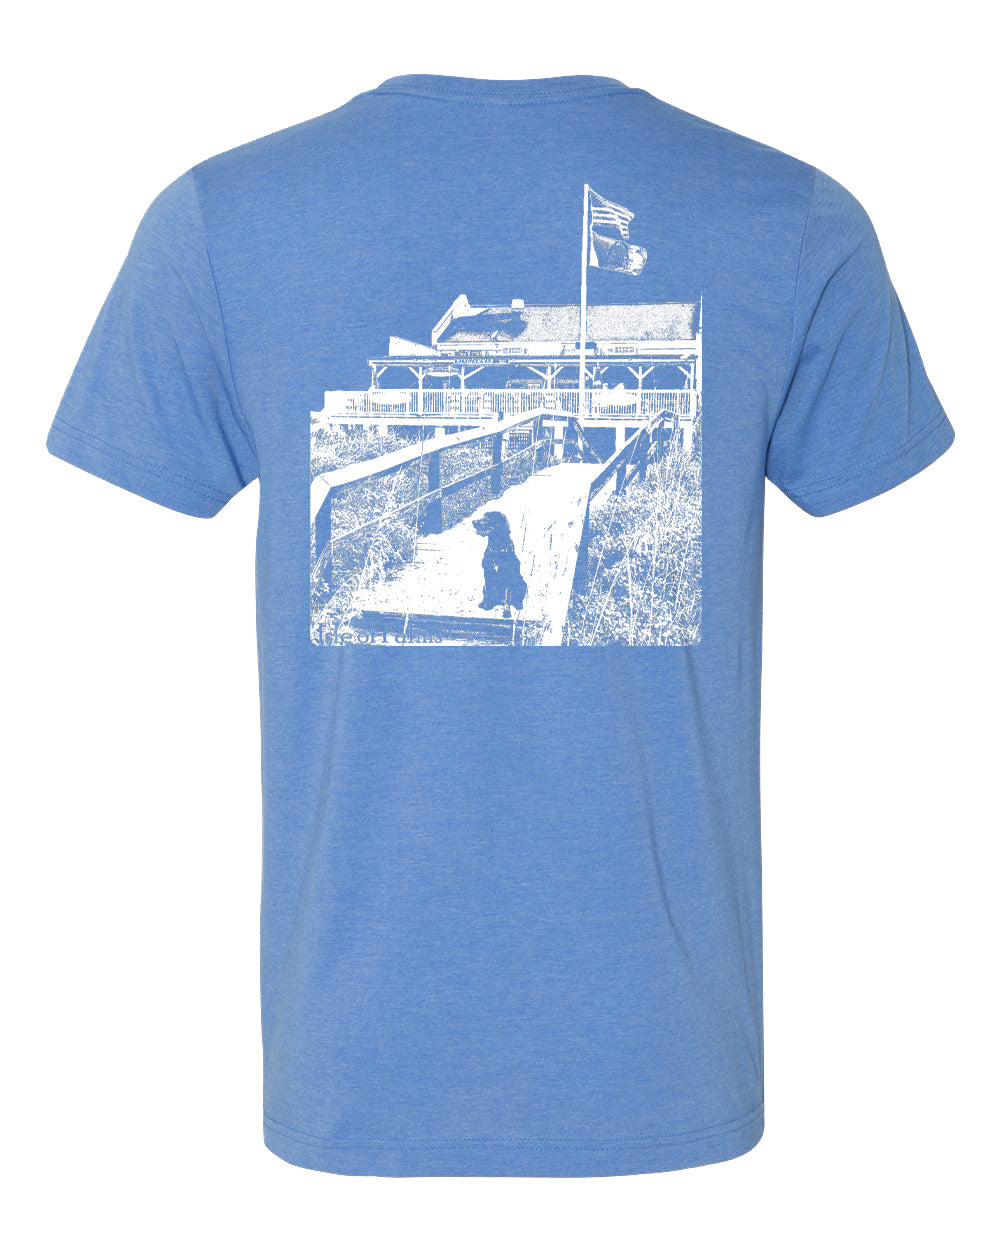 Isle of Palms - Windjammer Short Sleeve T-shirt